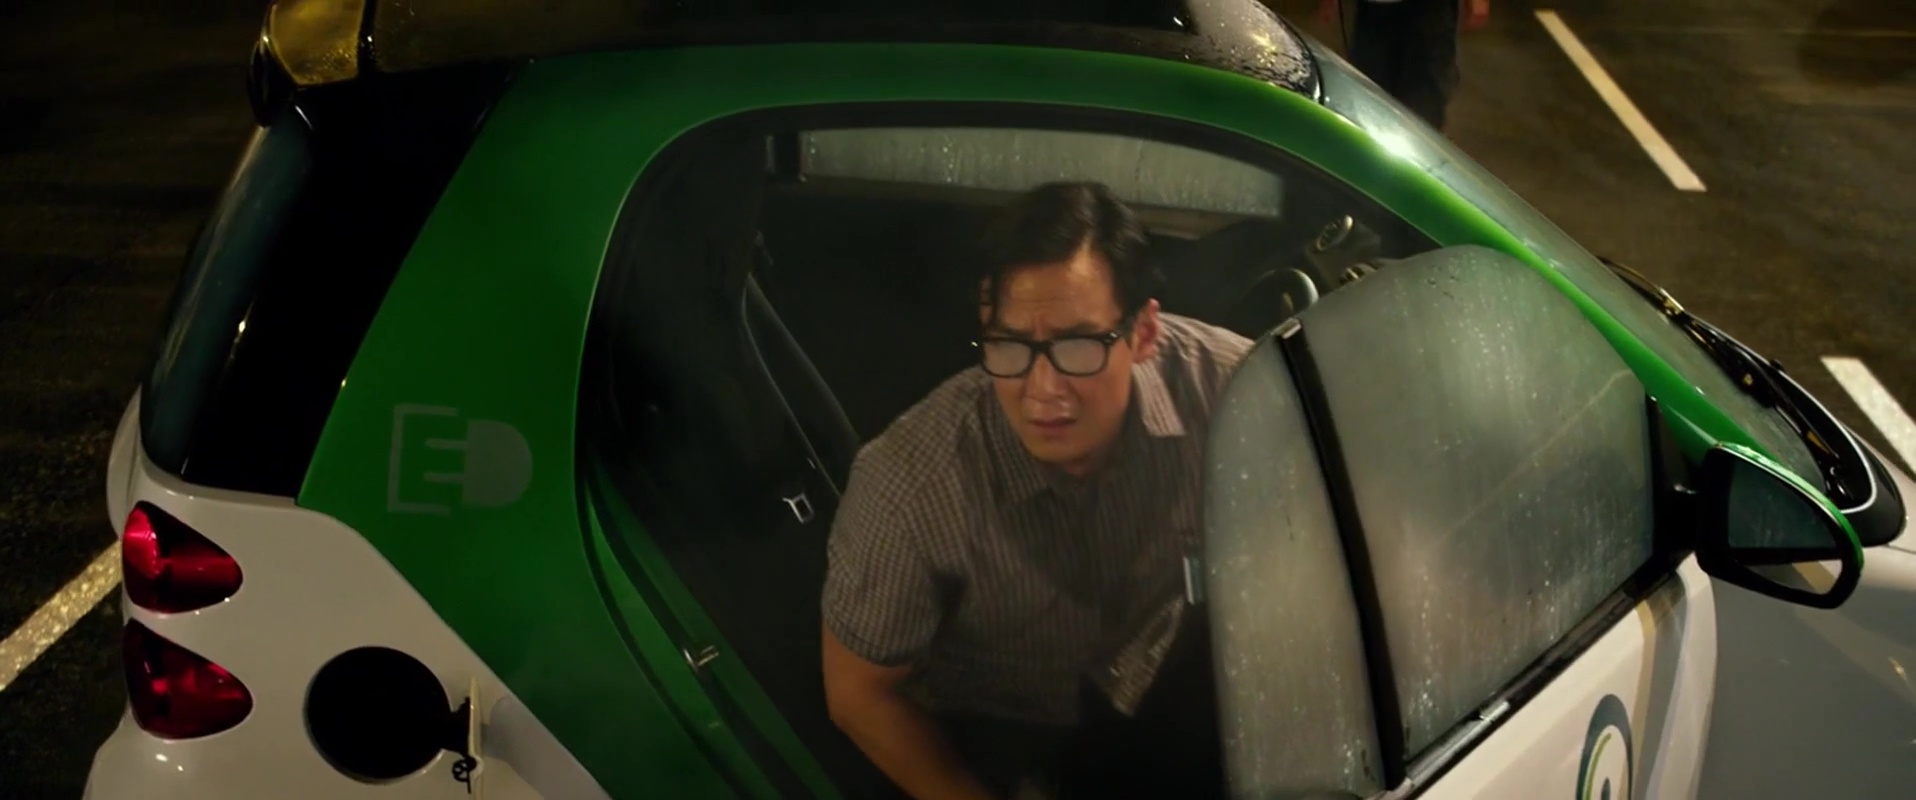 What To Do With Used Car Seats >> smart Fortwo Electric Drive Car Used by Daniel Wu in ...